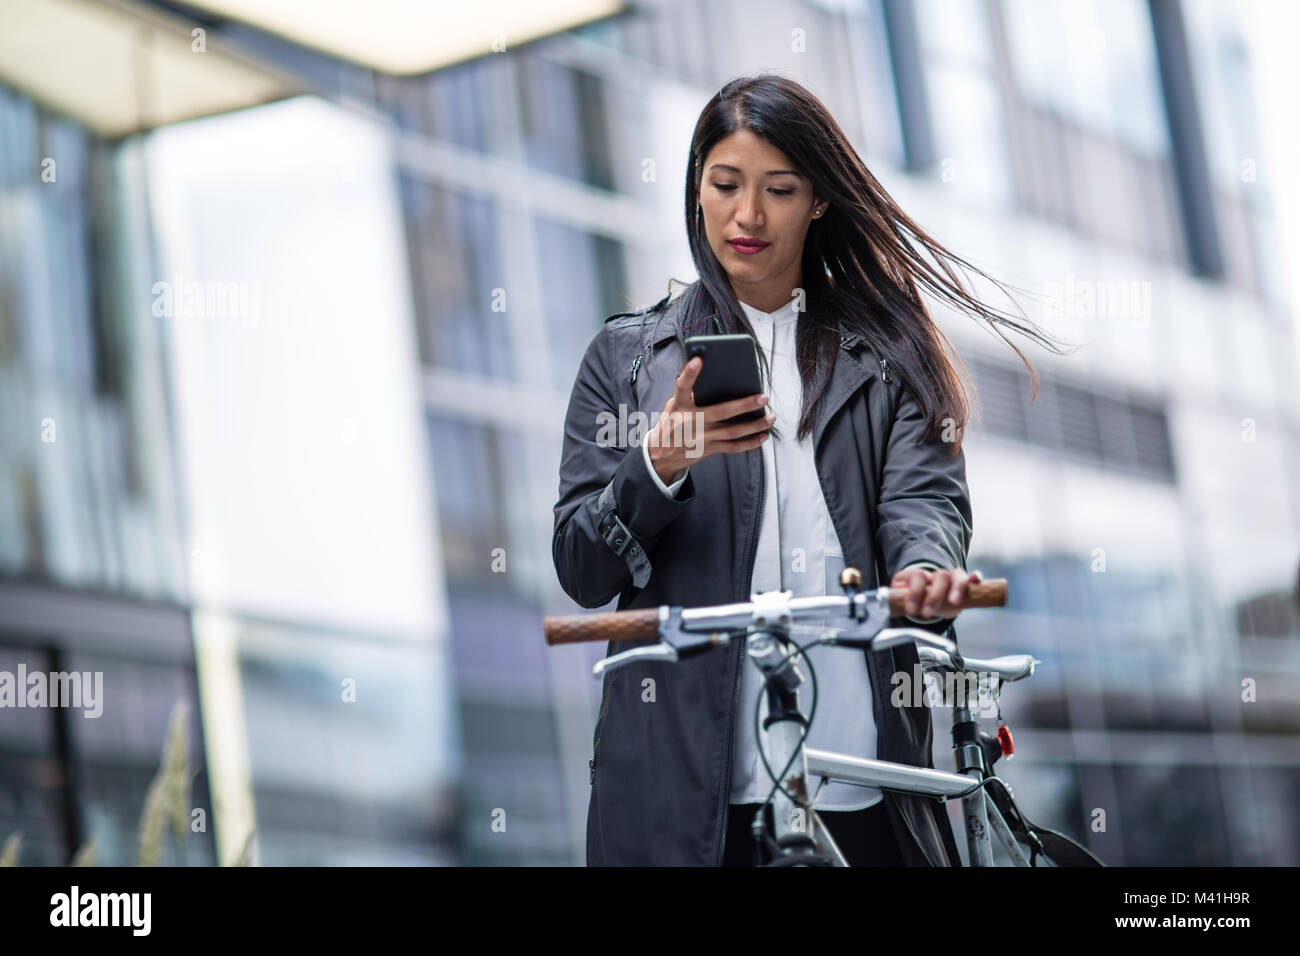 Businesswoman à vélo au travail using smartphone Photo Stock